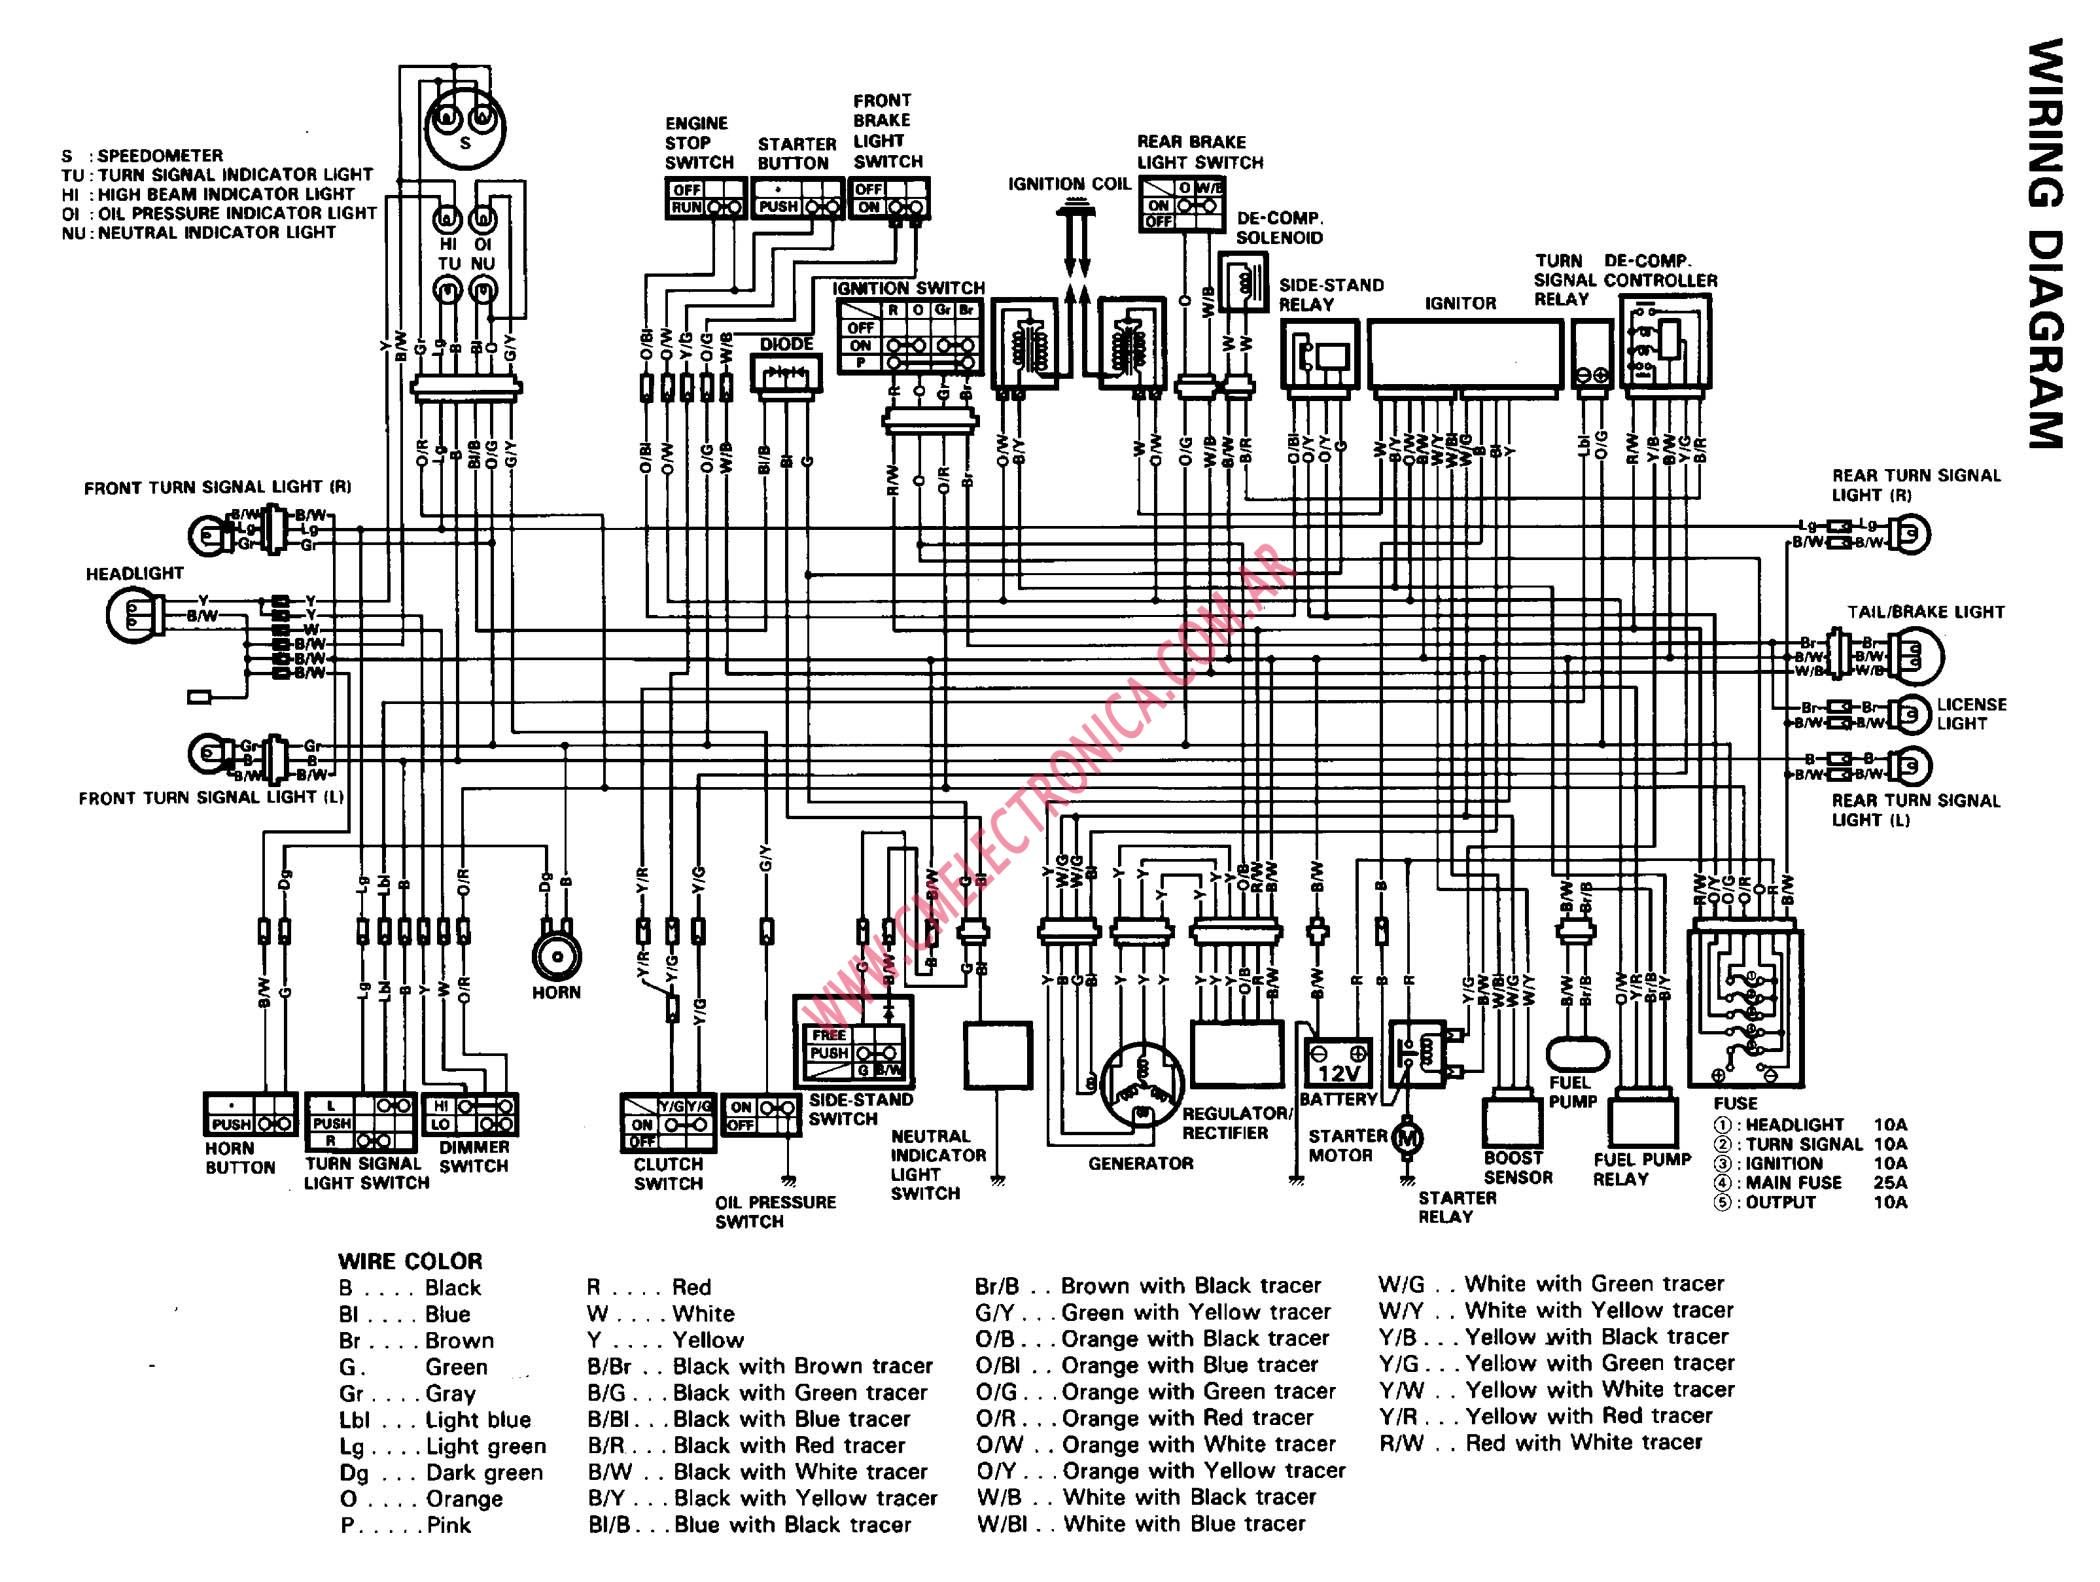 Diagram Kawasaki Bayou 220 Cdi Wiring Diagram Full